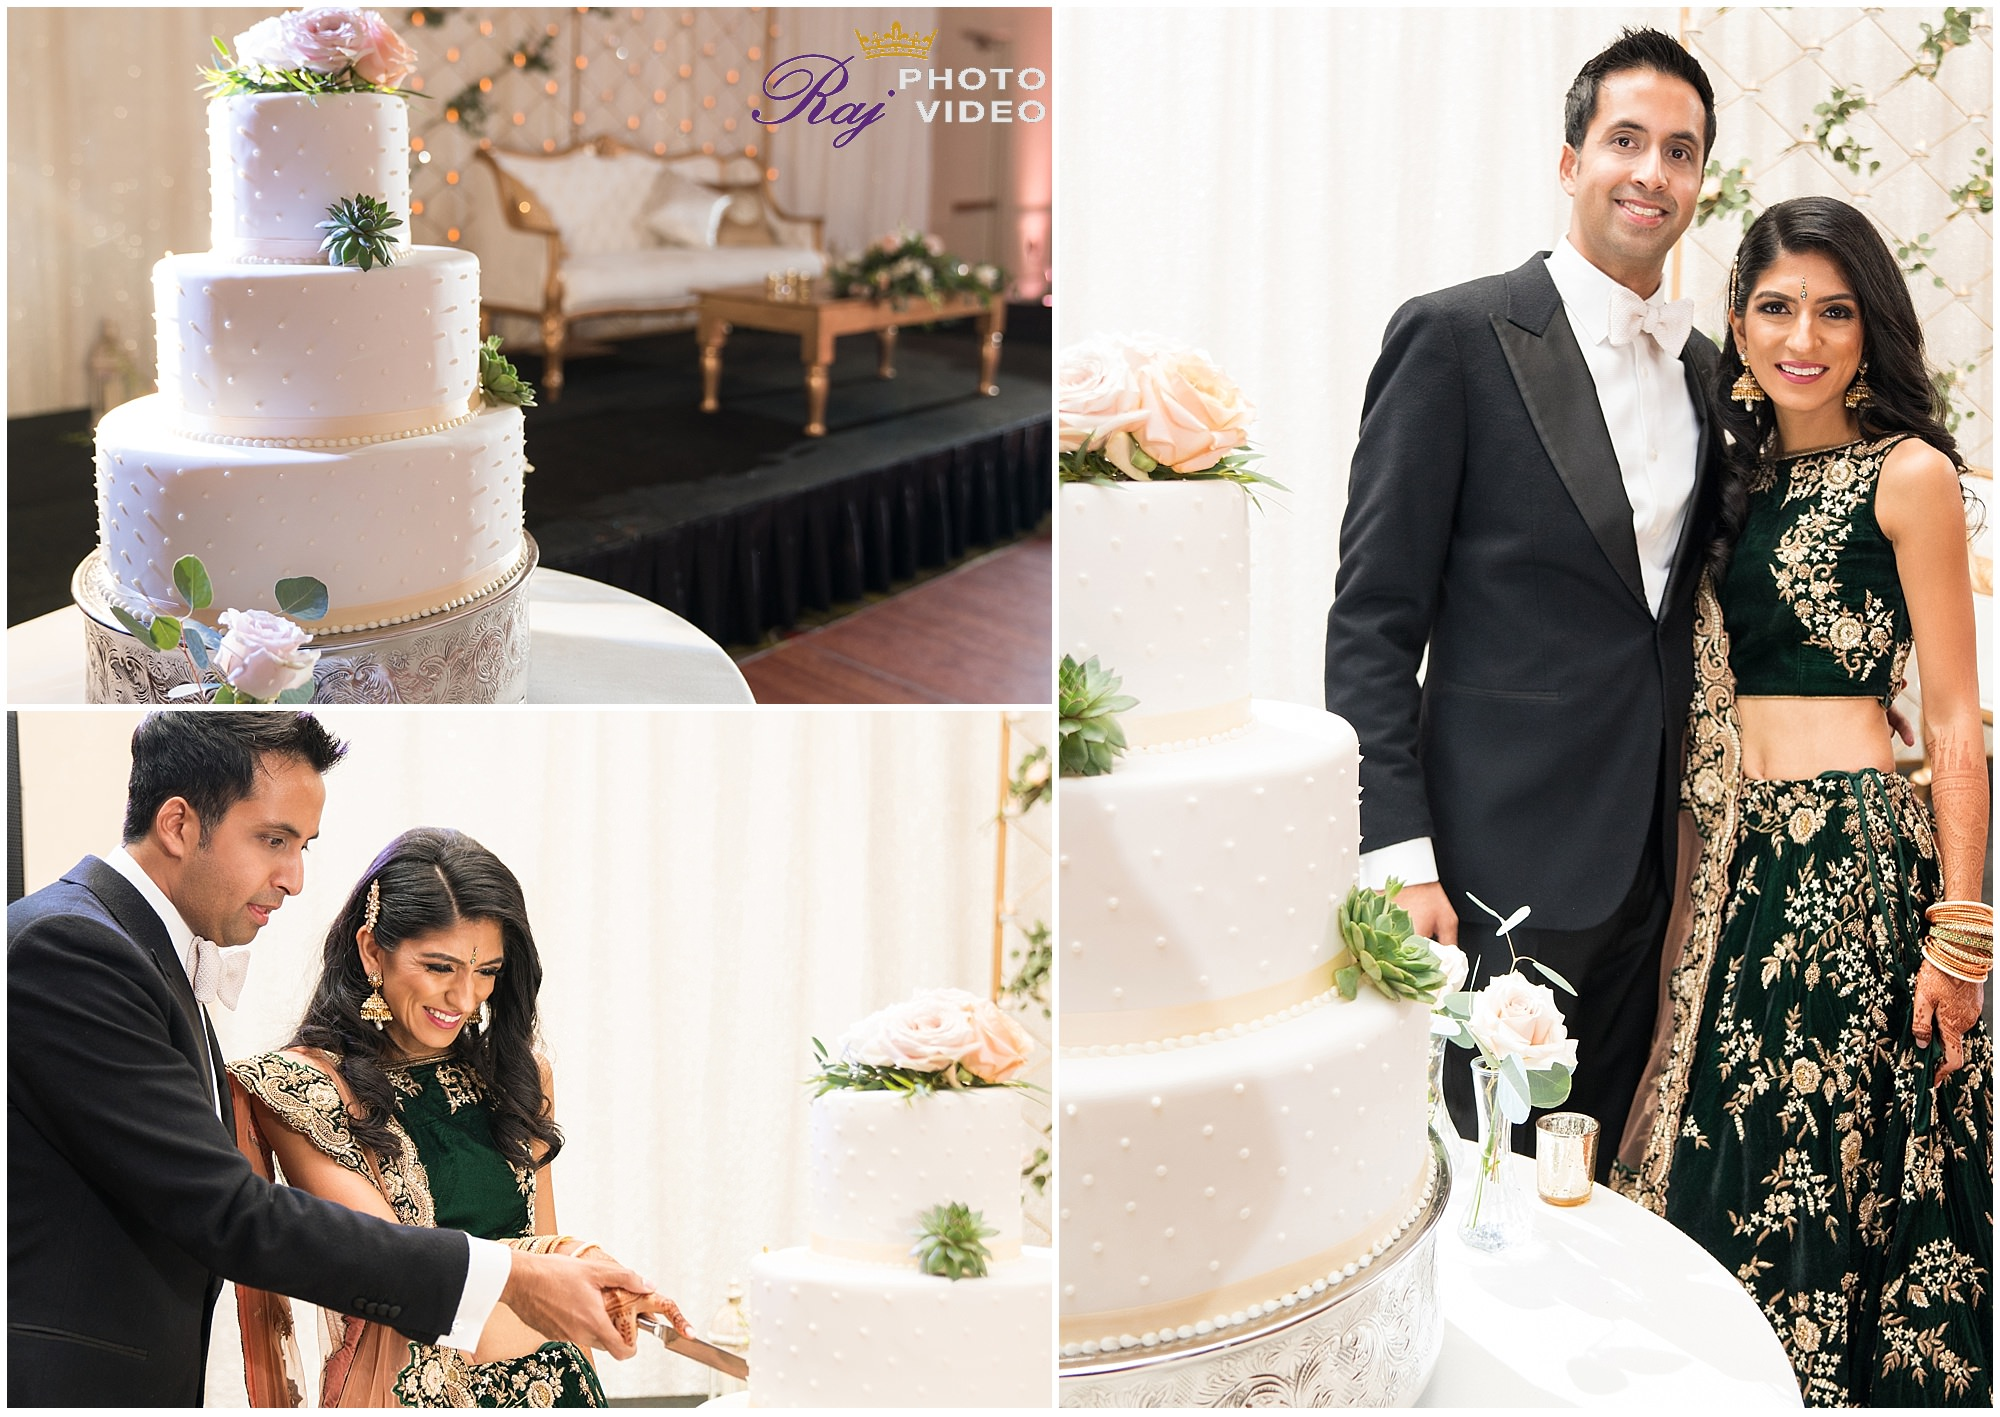 Scottsdale_Marriott_at_McDowell_Mountains_Arizona_Indian_Wedding_Sapna_Shyam-79.jpg